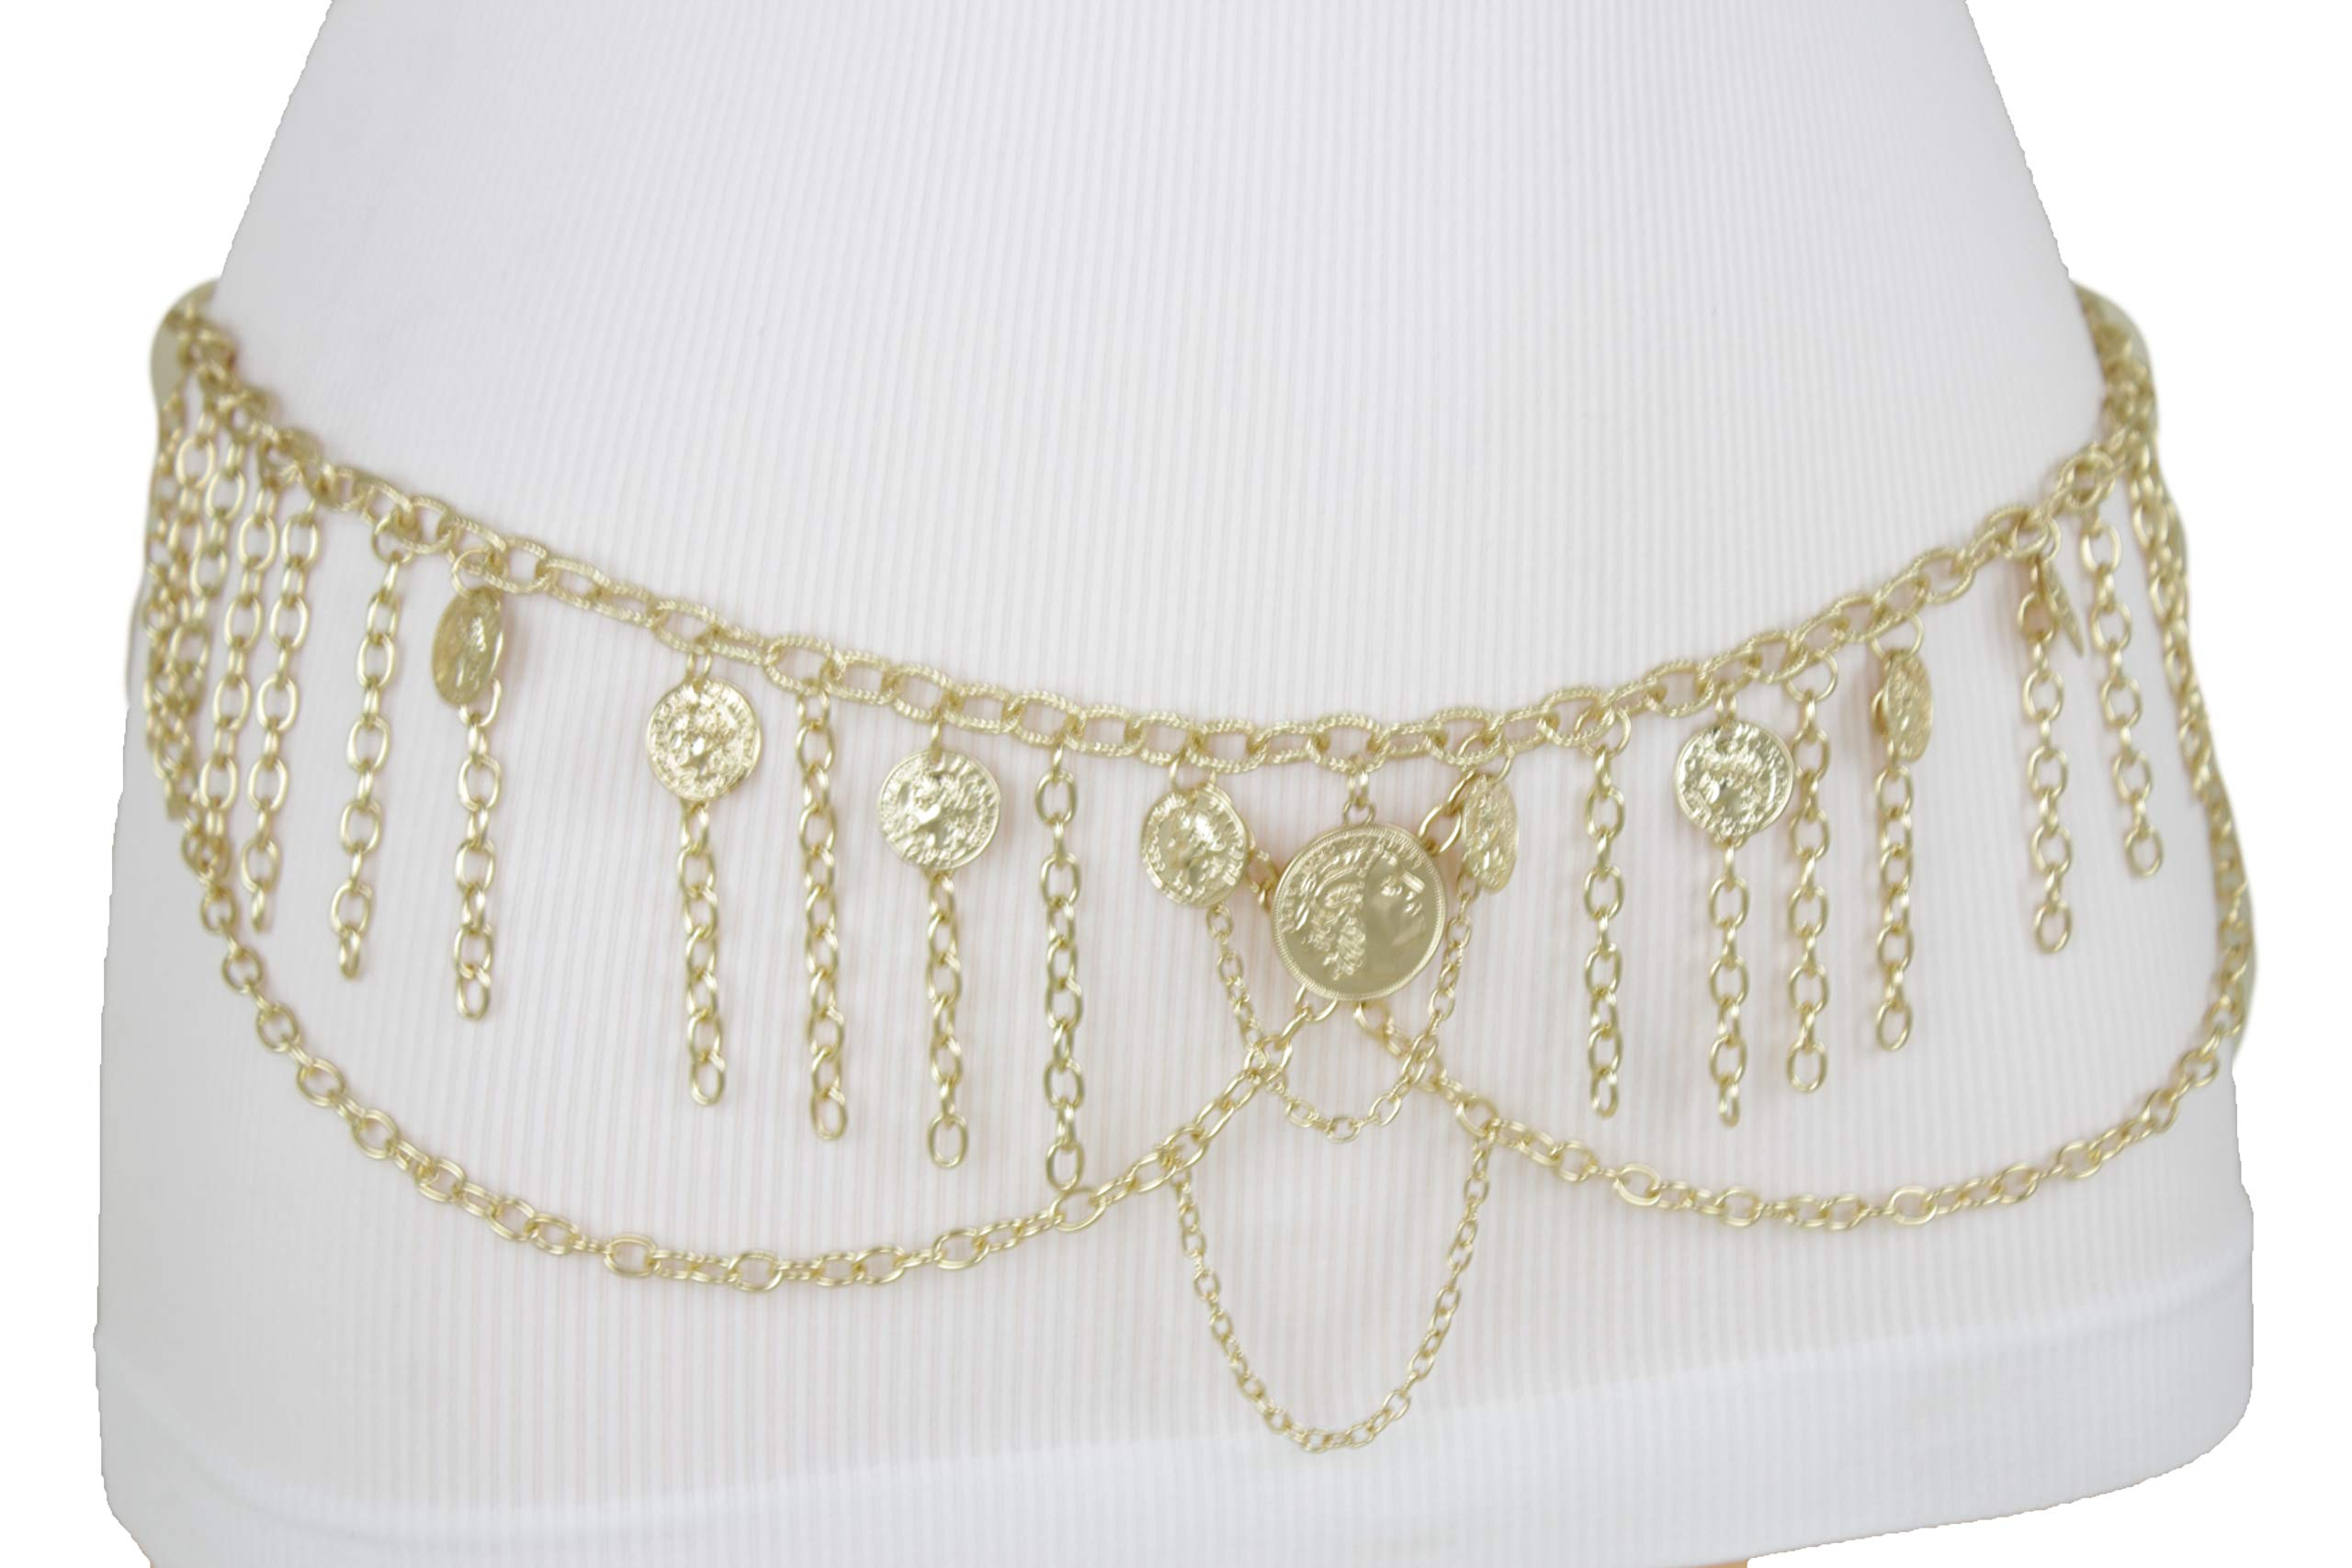 TFJ Women Ethnic Belt Hip Waist Gold Metal Chain Wave Coin Charms Belly Dancing M L XL